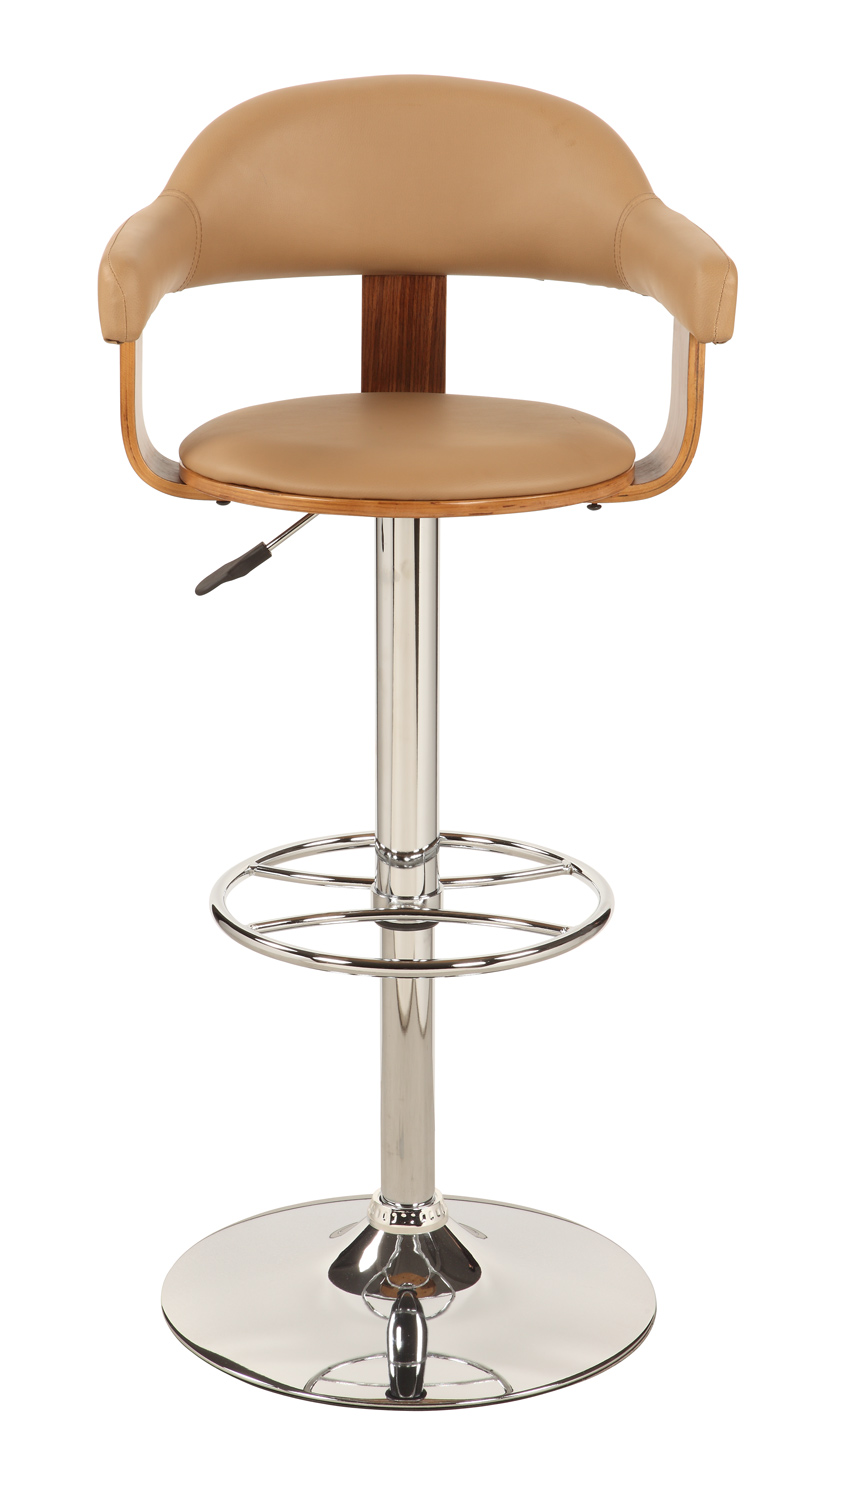 Chintaly Imports 1386 Upholstered Back Pneumatic Gas Lift Swivel Stool - Chrome/ Walnut